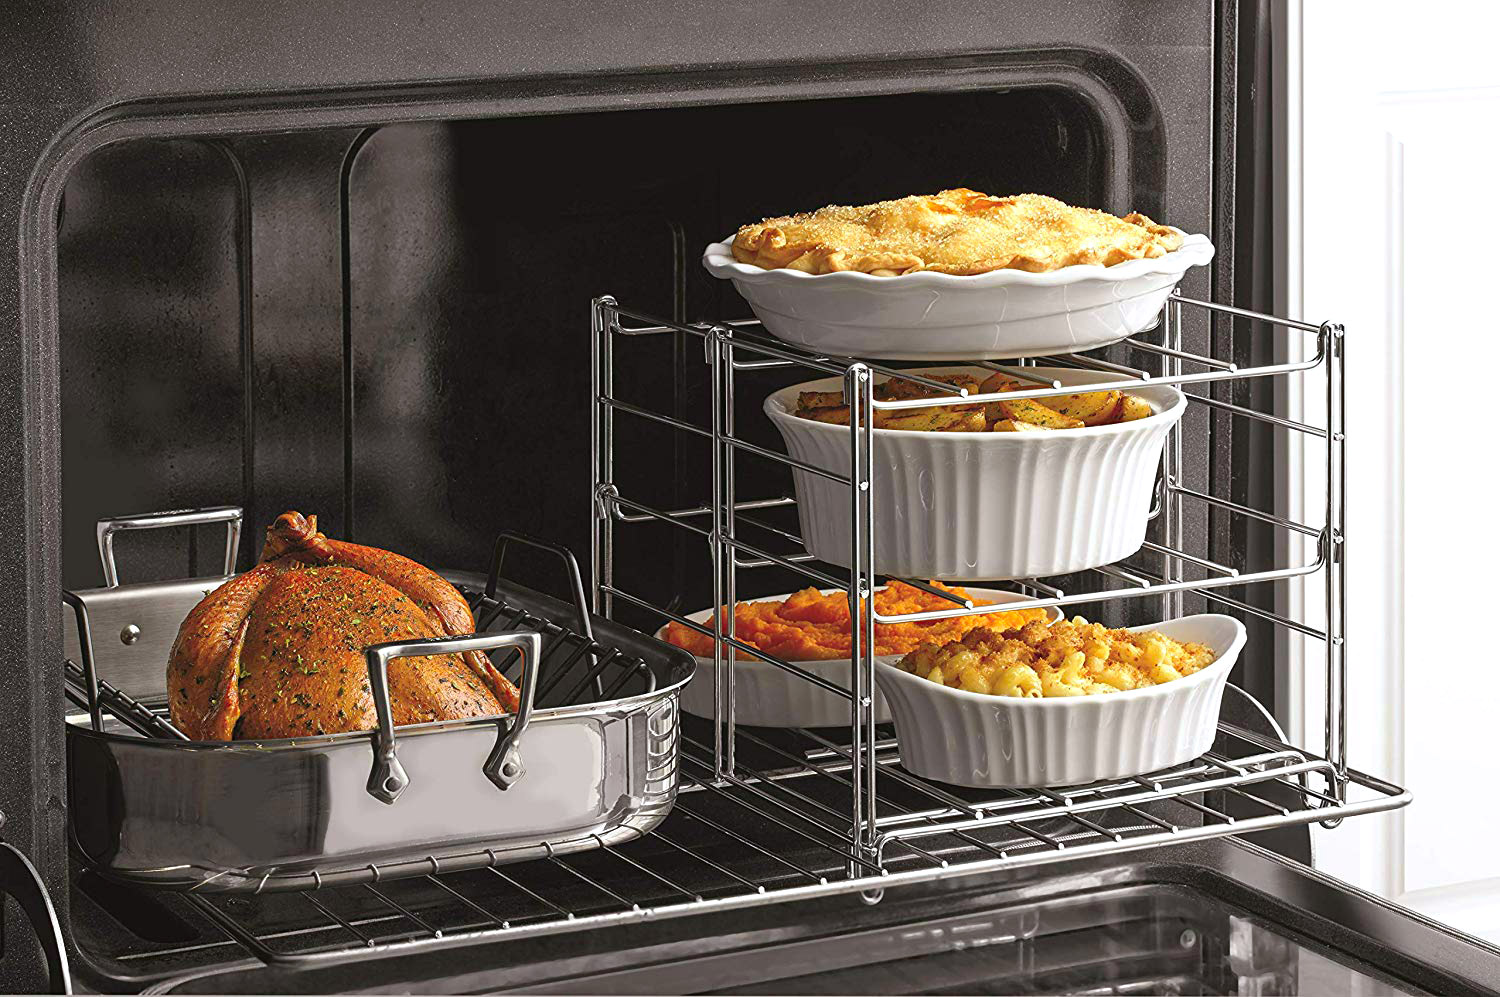 3-Tier Oven Baking Rack - The Green Head